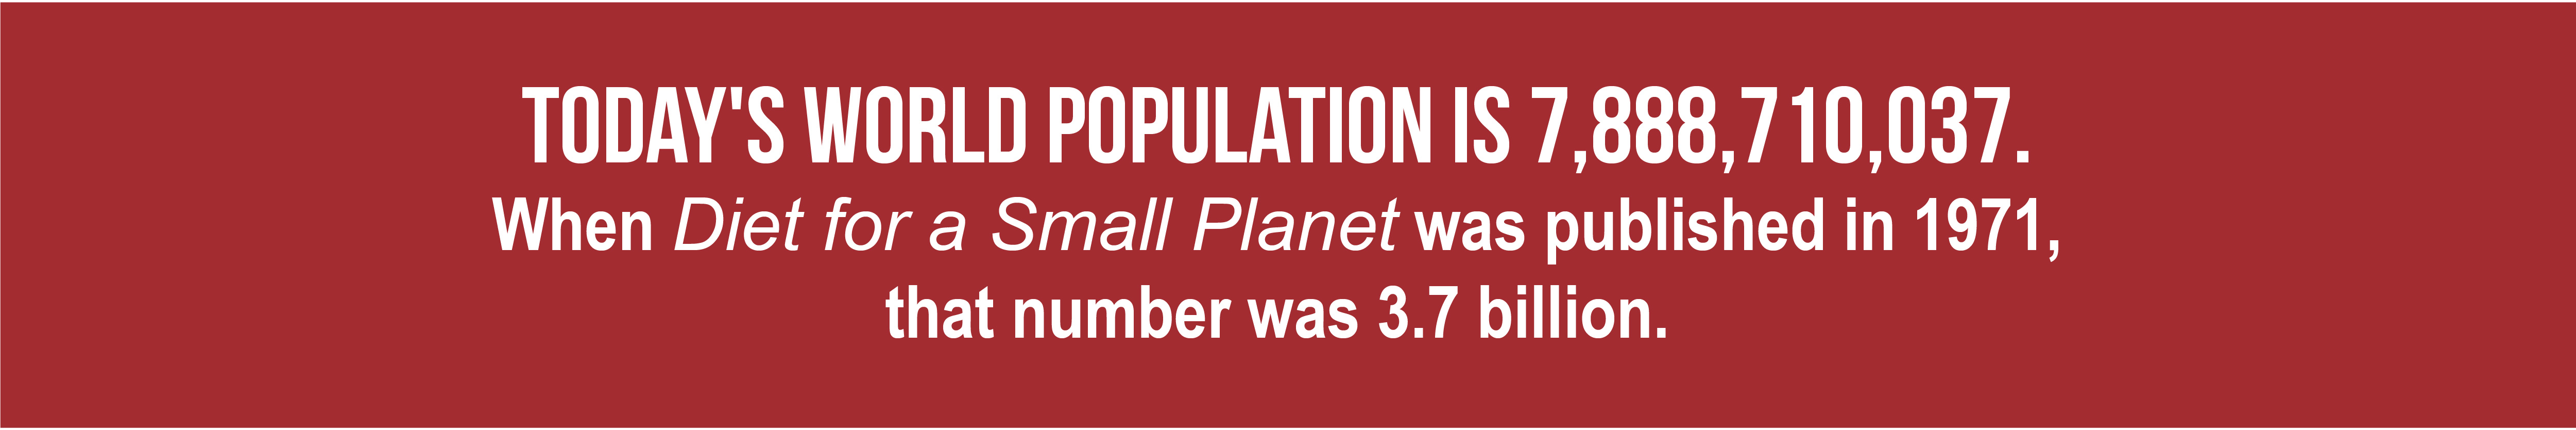 Today's world population is 7,888,710,037.